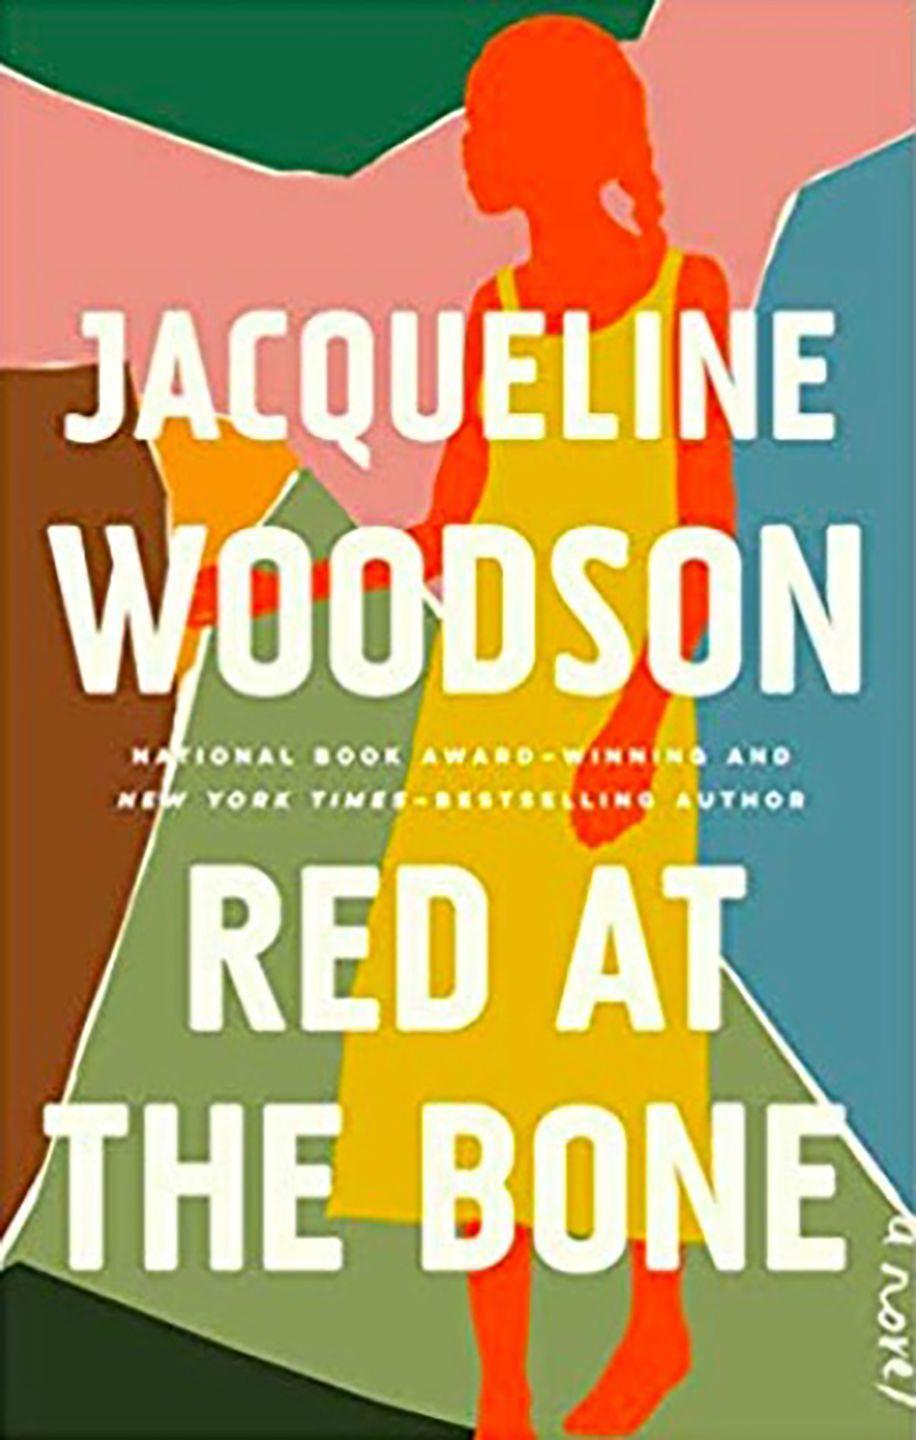 """<p><a class=""""link rapid-noclick-resp"""" href=""""https://www.amazon.co.uk/Red-at-Bone-Jacqueline-Woodson/dp/0525535276/ref=tmm_hrd_title_0?_encoding=UTF8&qid=1567162037&sr=8-1&tag=hearstuk-yahoo-21&ascsubtag=%5Bartid%7C1919.g.15922606%5Bsrc%7Cyahoo-uk"""" rel=""""nofollow noopener"""" target=""""_blank"""" data-ylk=""""slk:SHOP NOW"""">SHOP NOW</a> £21.16, Amazon</p><p>16-year-old Melody is at her coming of age ceremony, wearing a custom-made dress that has originally made for her grandma's ceremony - had she not fallen pregnant. Red At The Bone is an exploration of the roles history and community play in the experiences, decisions, and relationships of families, as well as the life of the new child. </p>"""